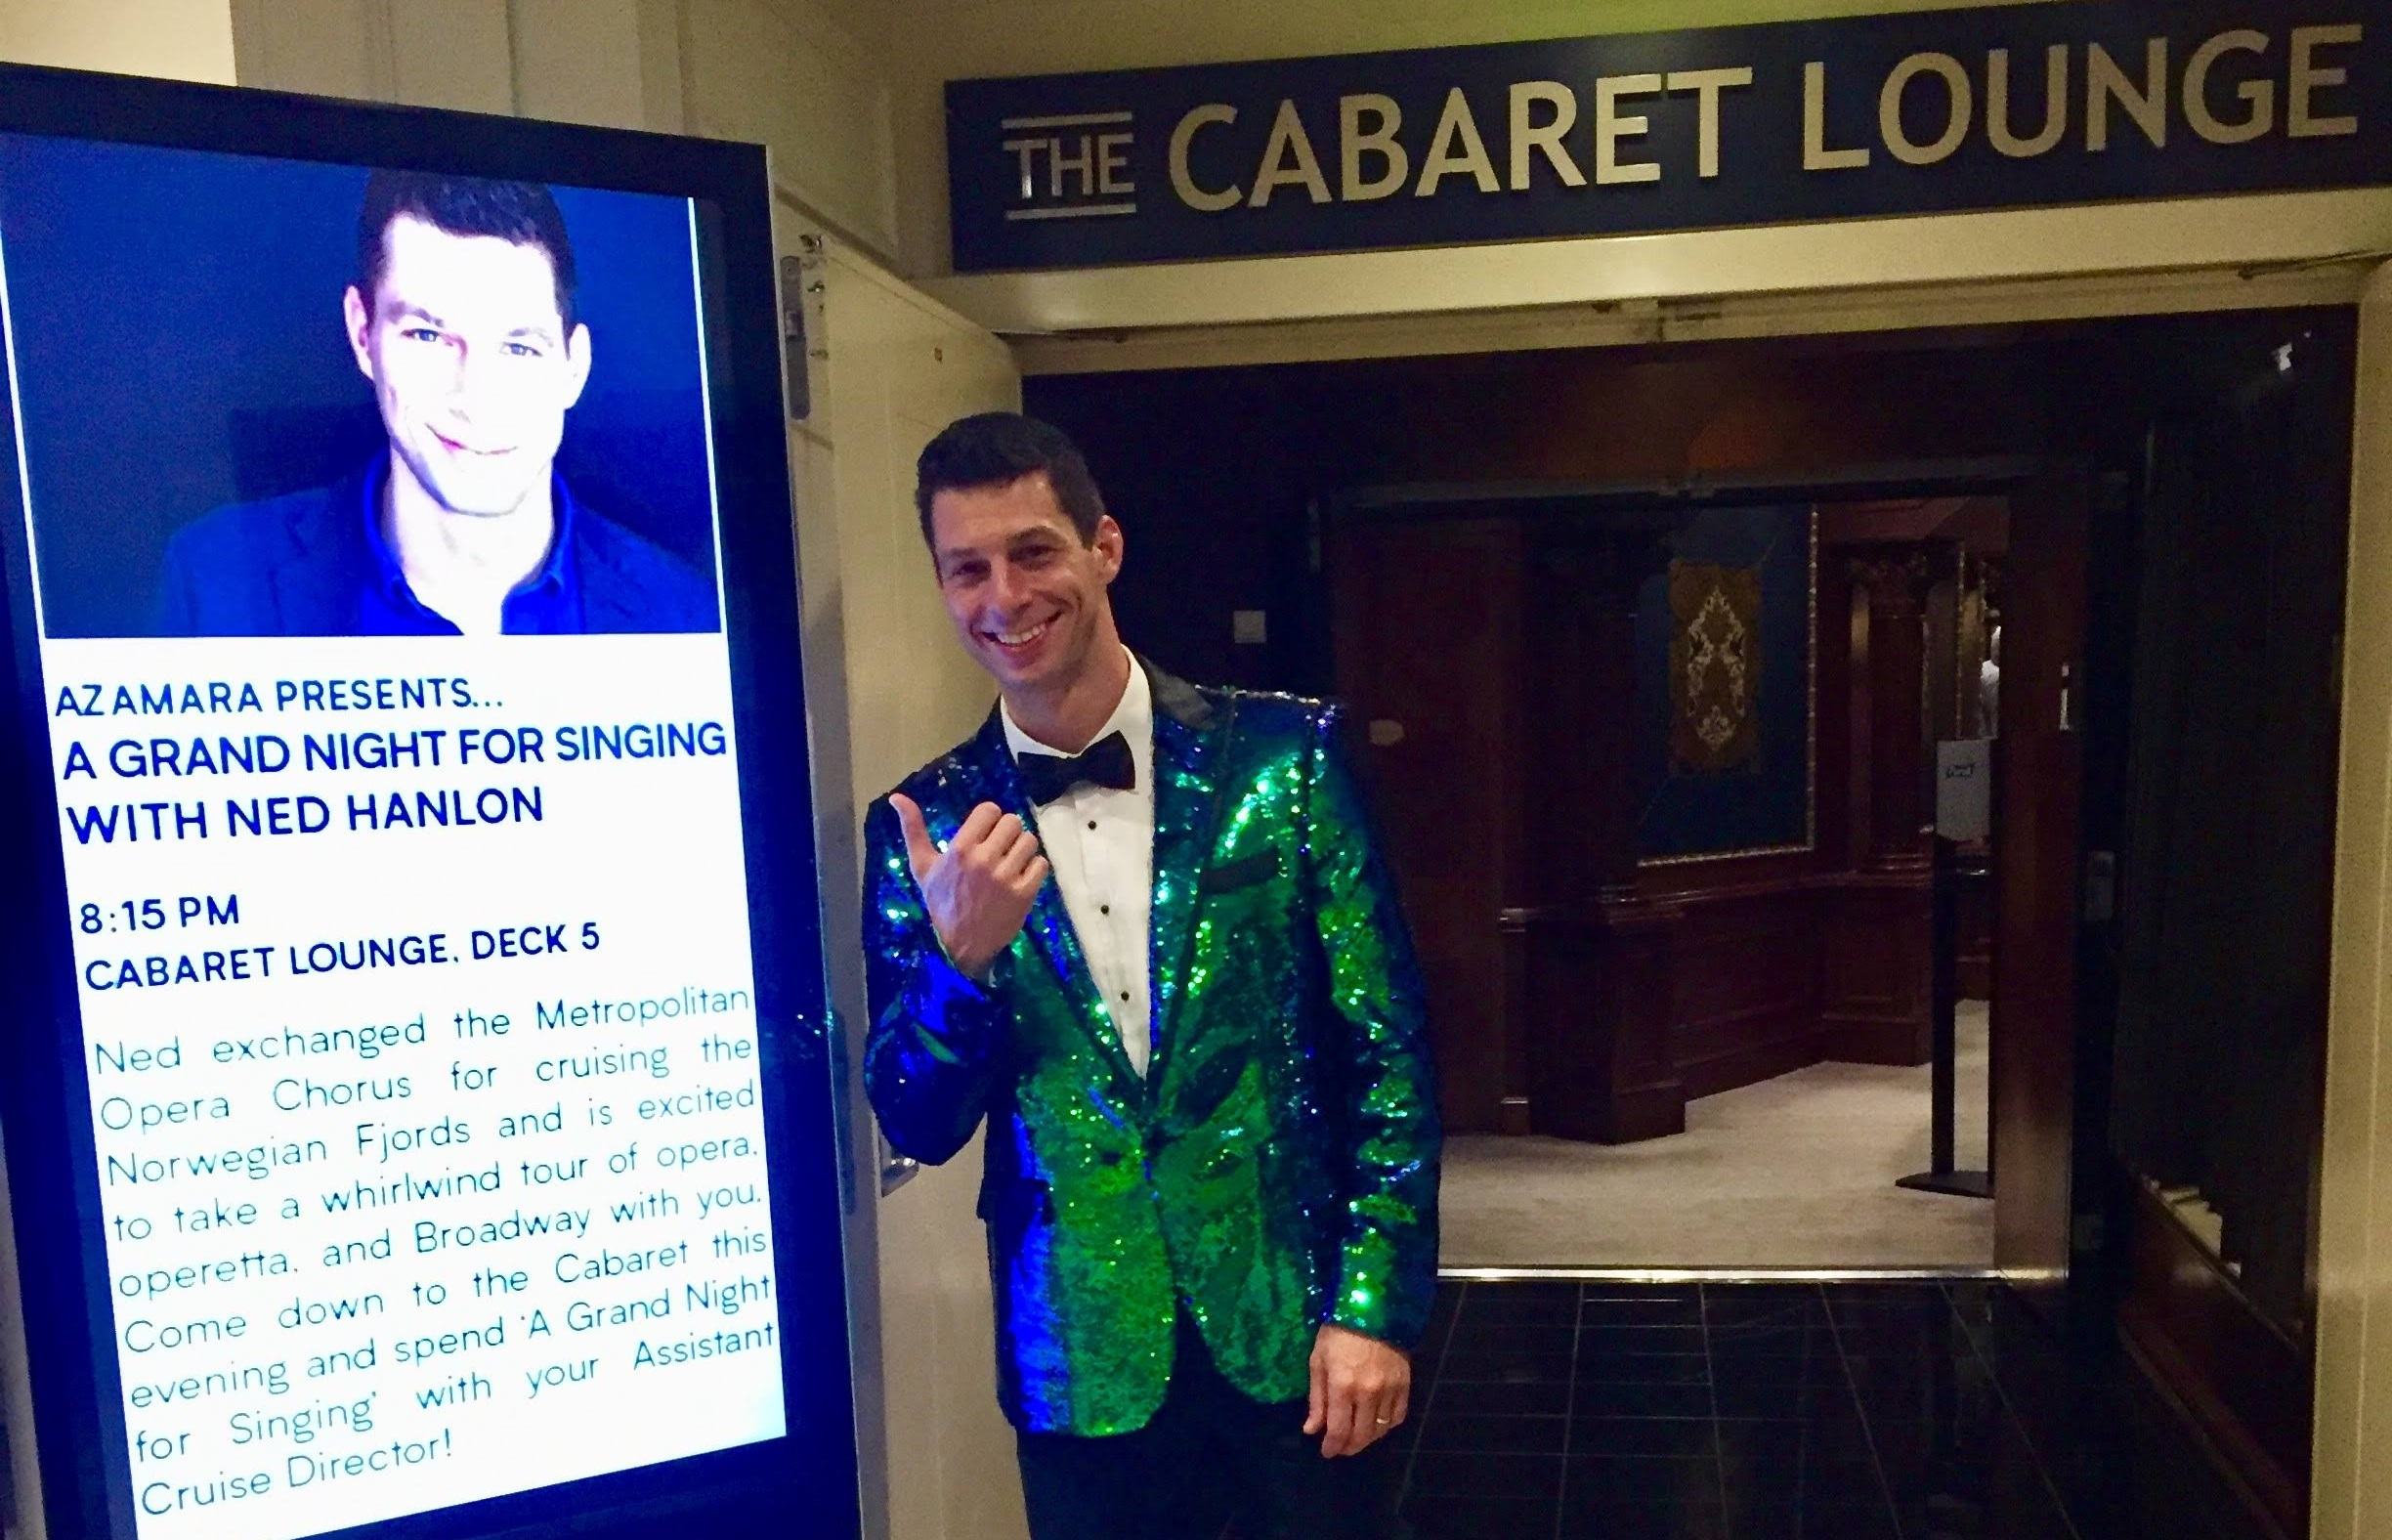 Safety Advisory: do not look directly at the green sequin tuxedo jacket. Blindness may occur.